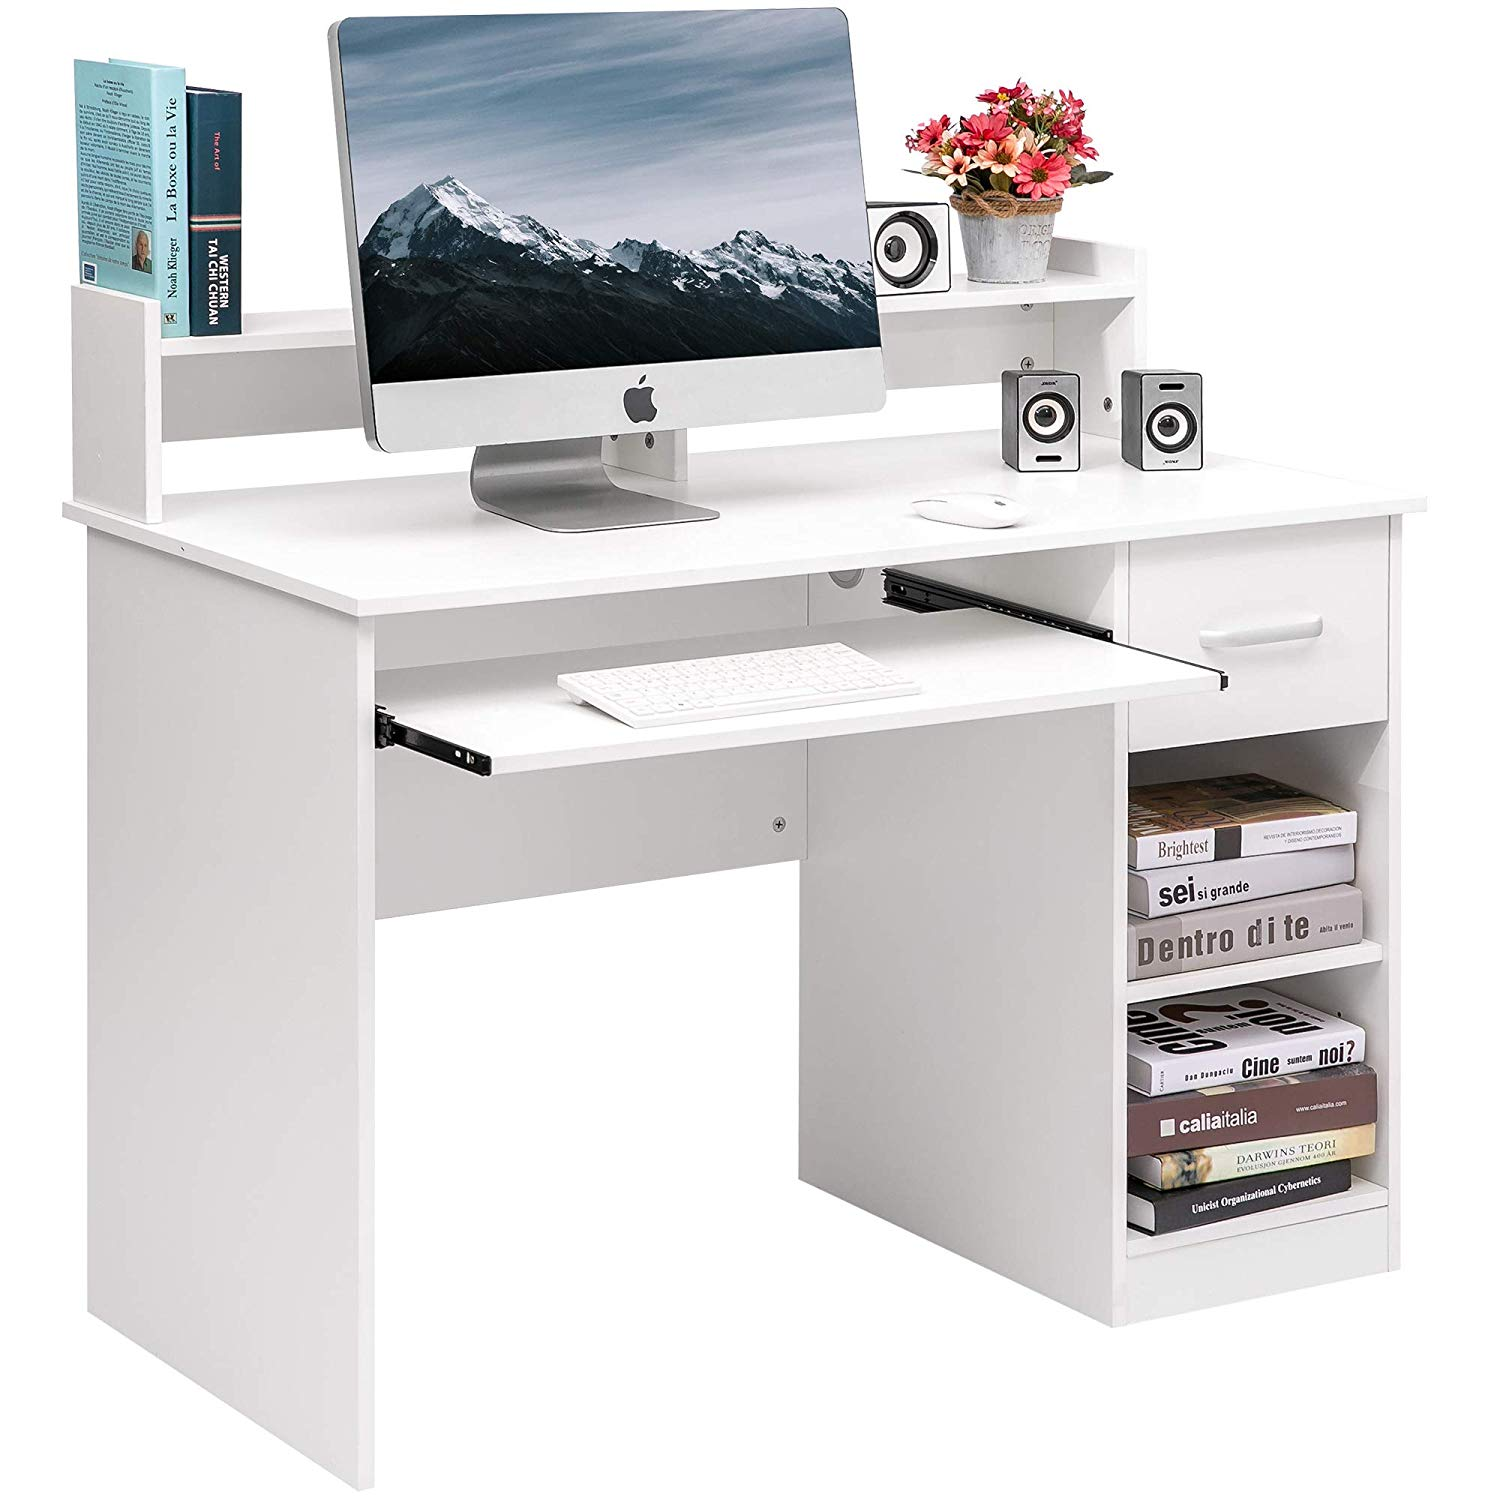 Computer Desk Office Home Furniture Writing Desk Hutch Keyboard Tray, White, Office Furniture, Rectangular Shape, Flexible Drawer, Bundle Our Expert Guide Tips Home Arrangement